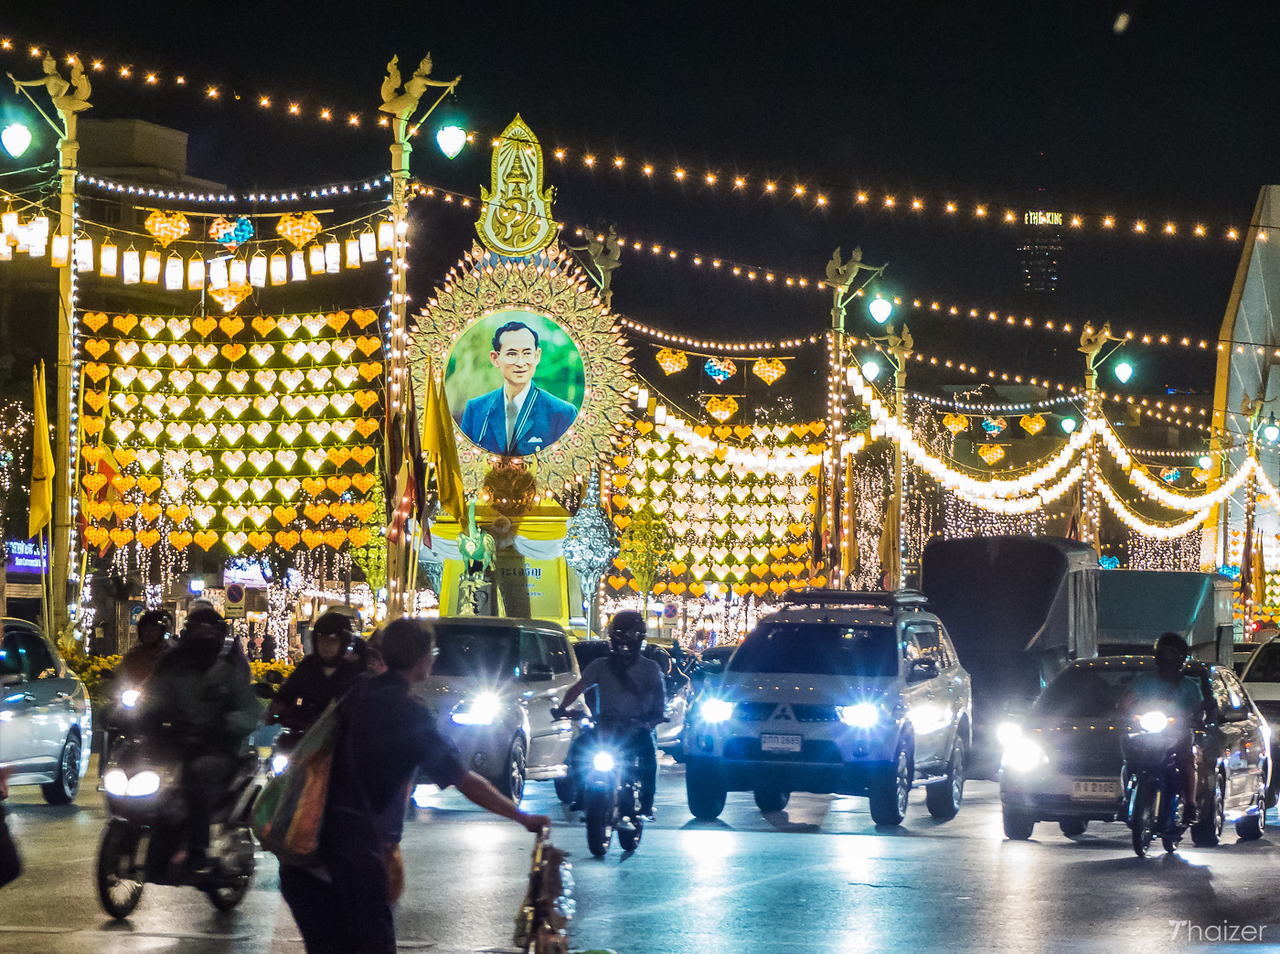 illuminations in Bangkok for HM the King's birthday